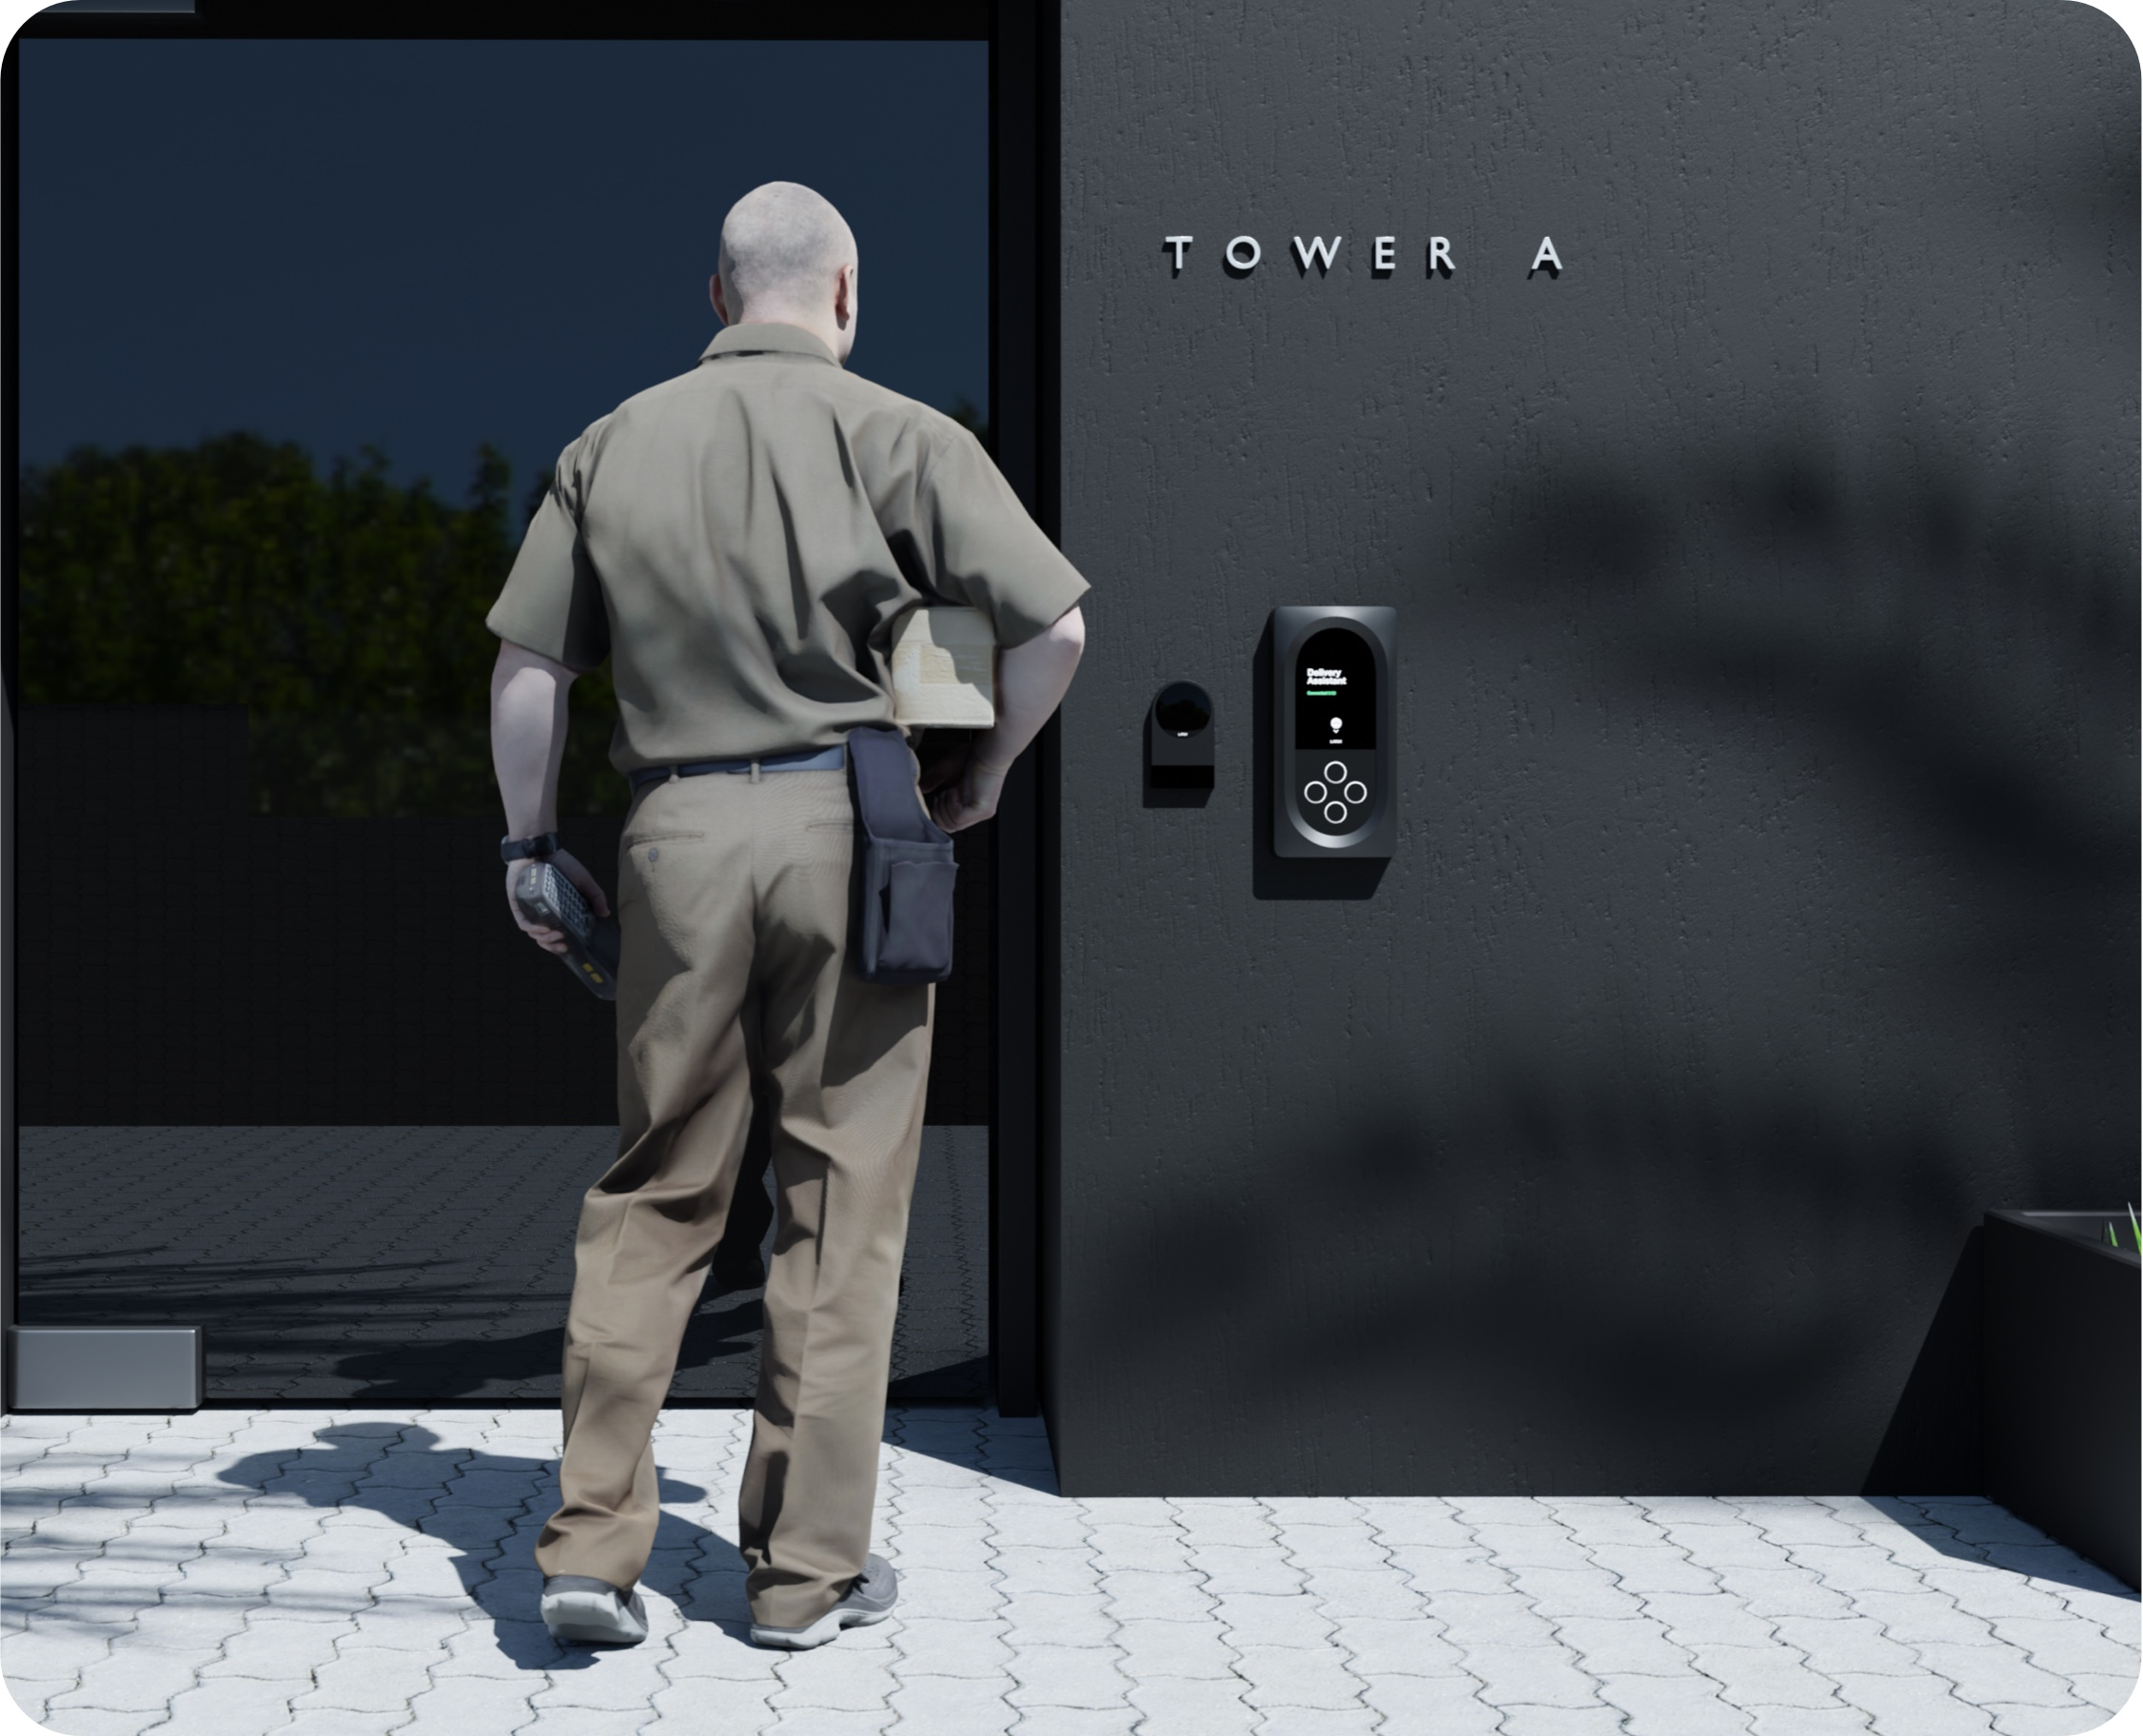 Delivery man speaking to the Latch Delivery Assistant via the Latch Intercom